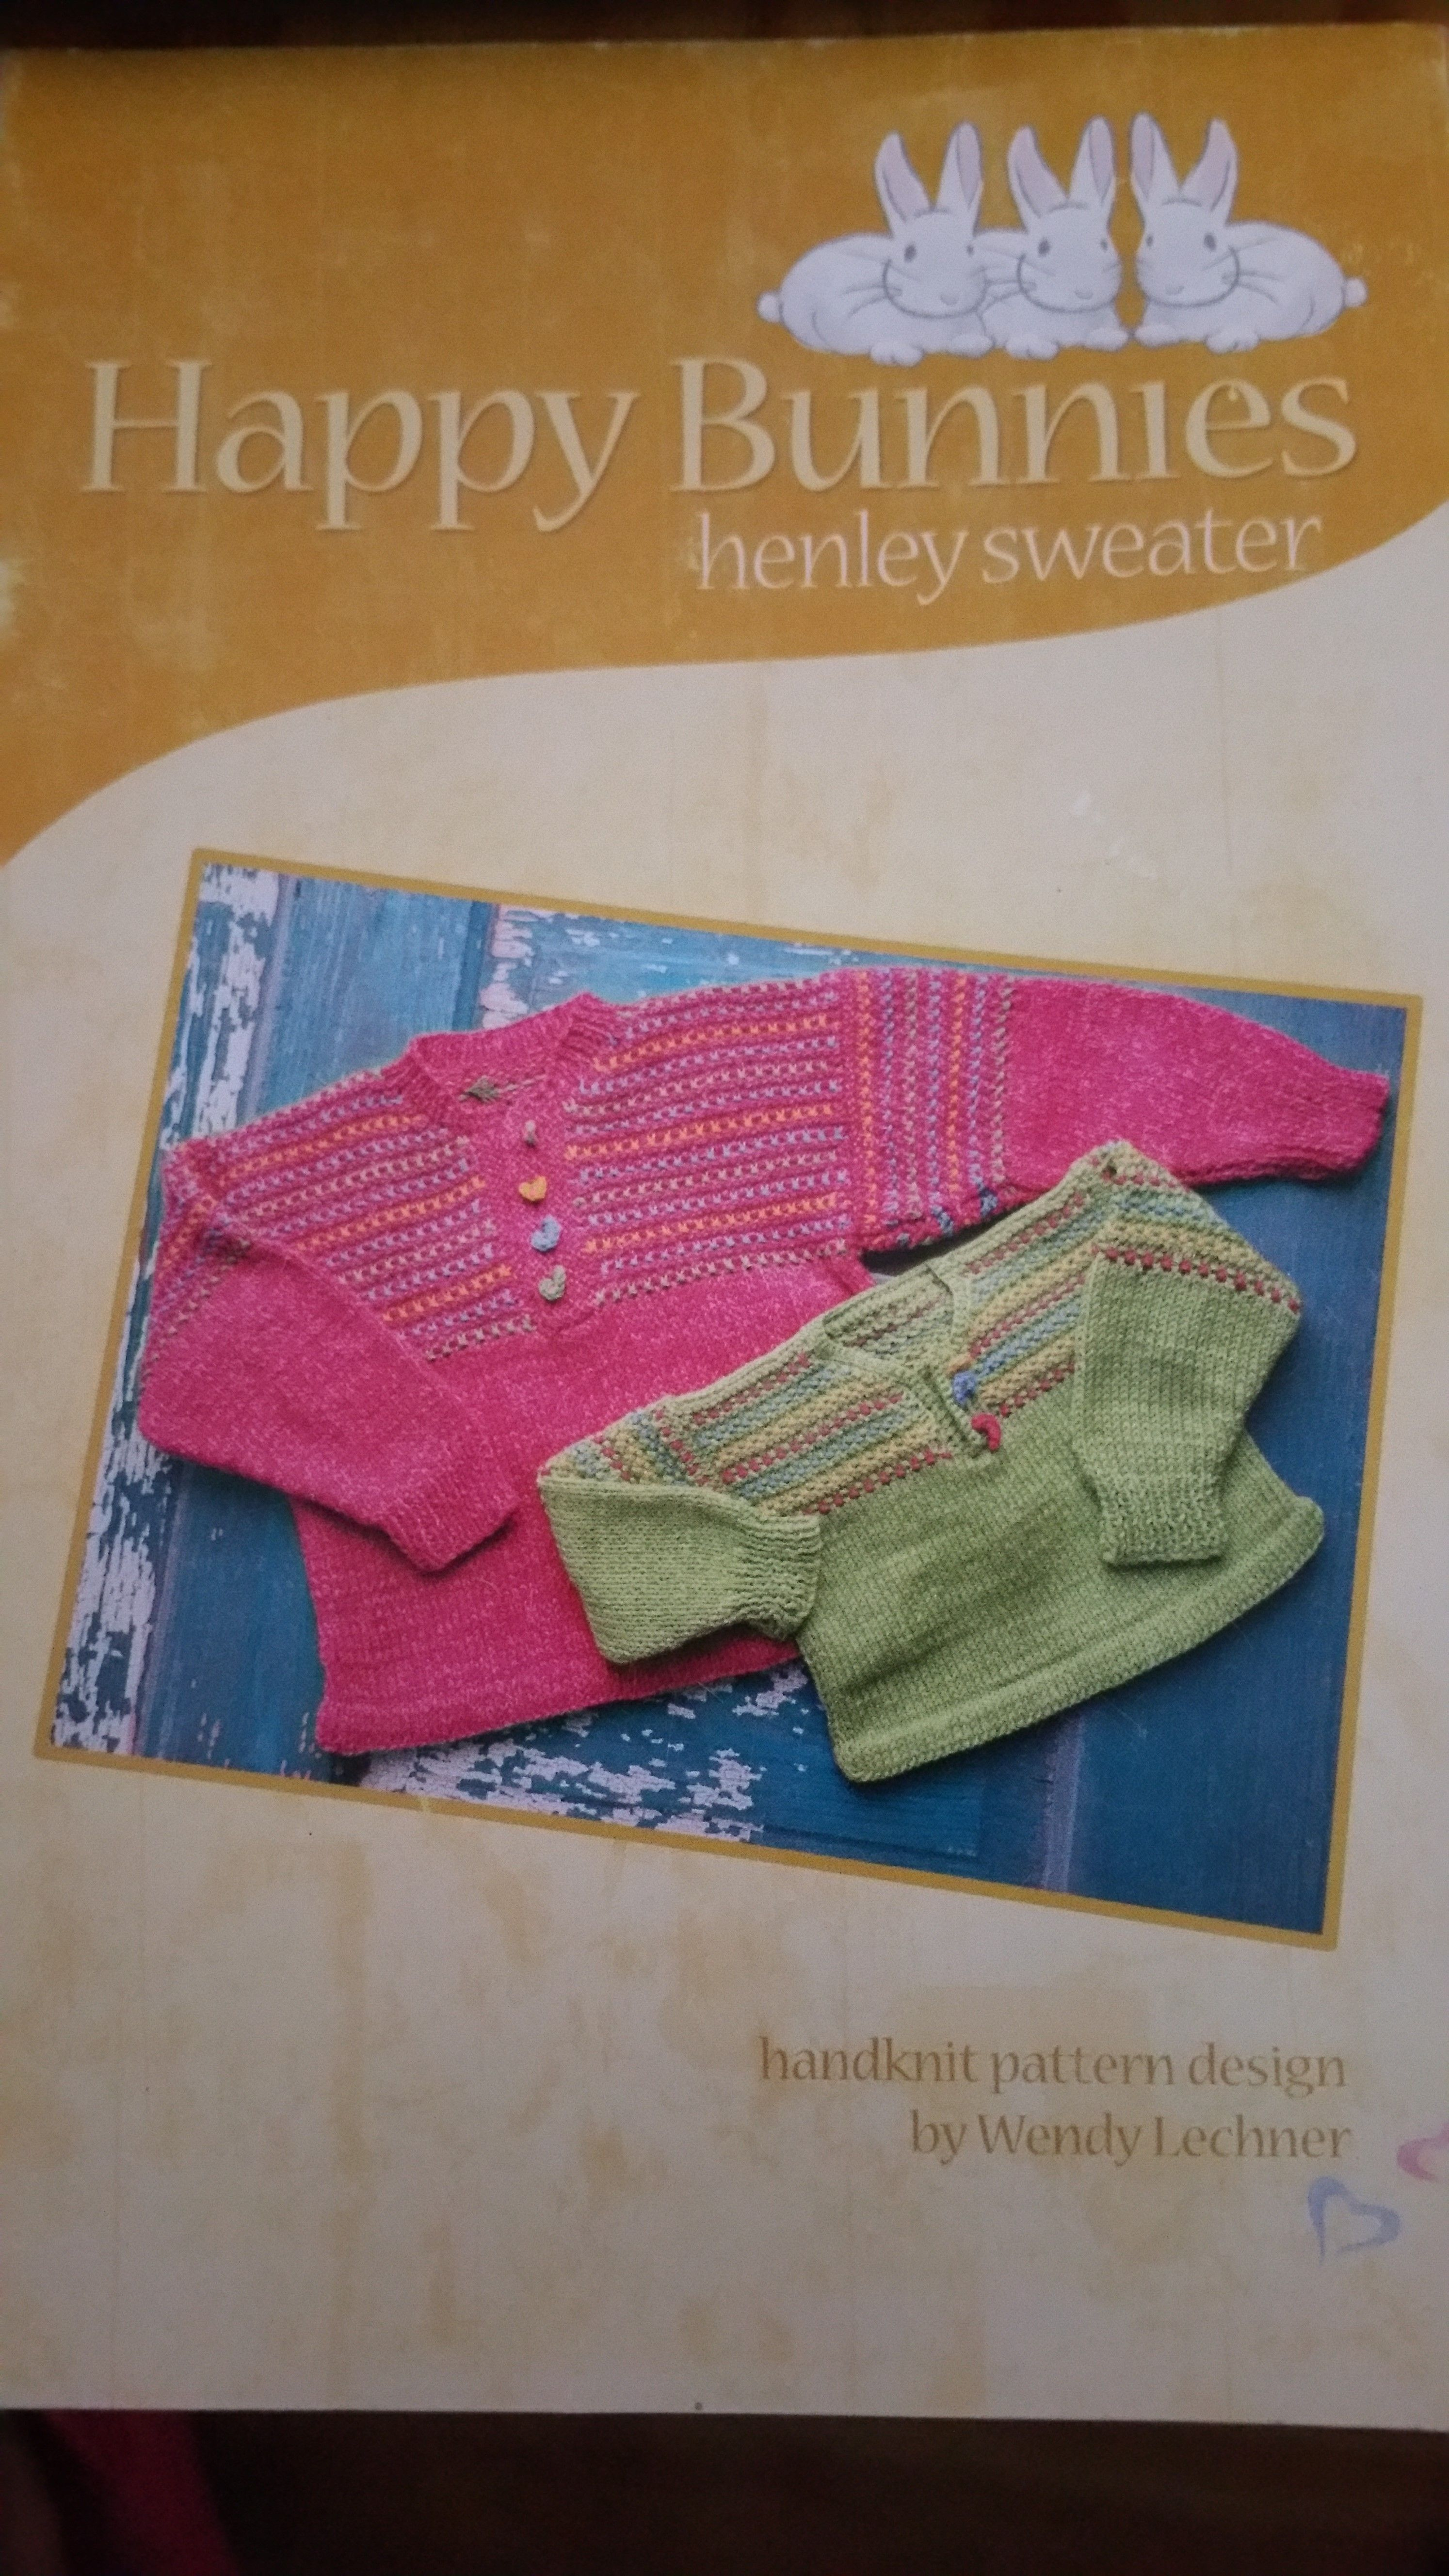 Happy Bunnies Henley Designed Sweater by the Appalachian Baby - $1.00 plus postage. Baby pattern sizes 6 to 24 months.